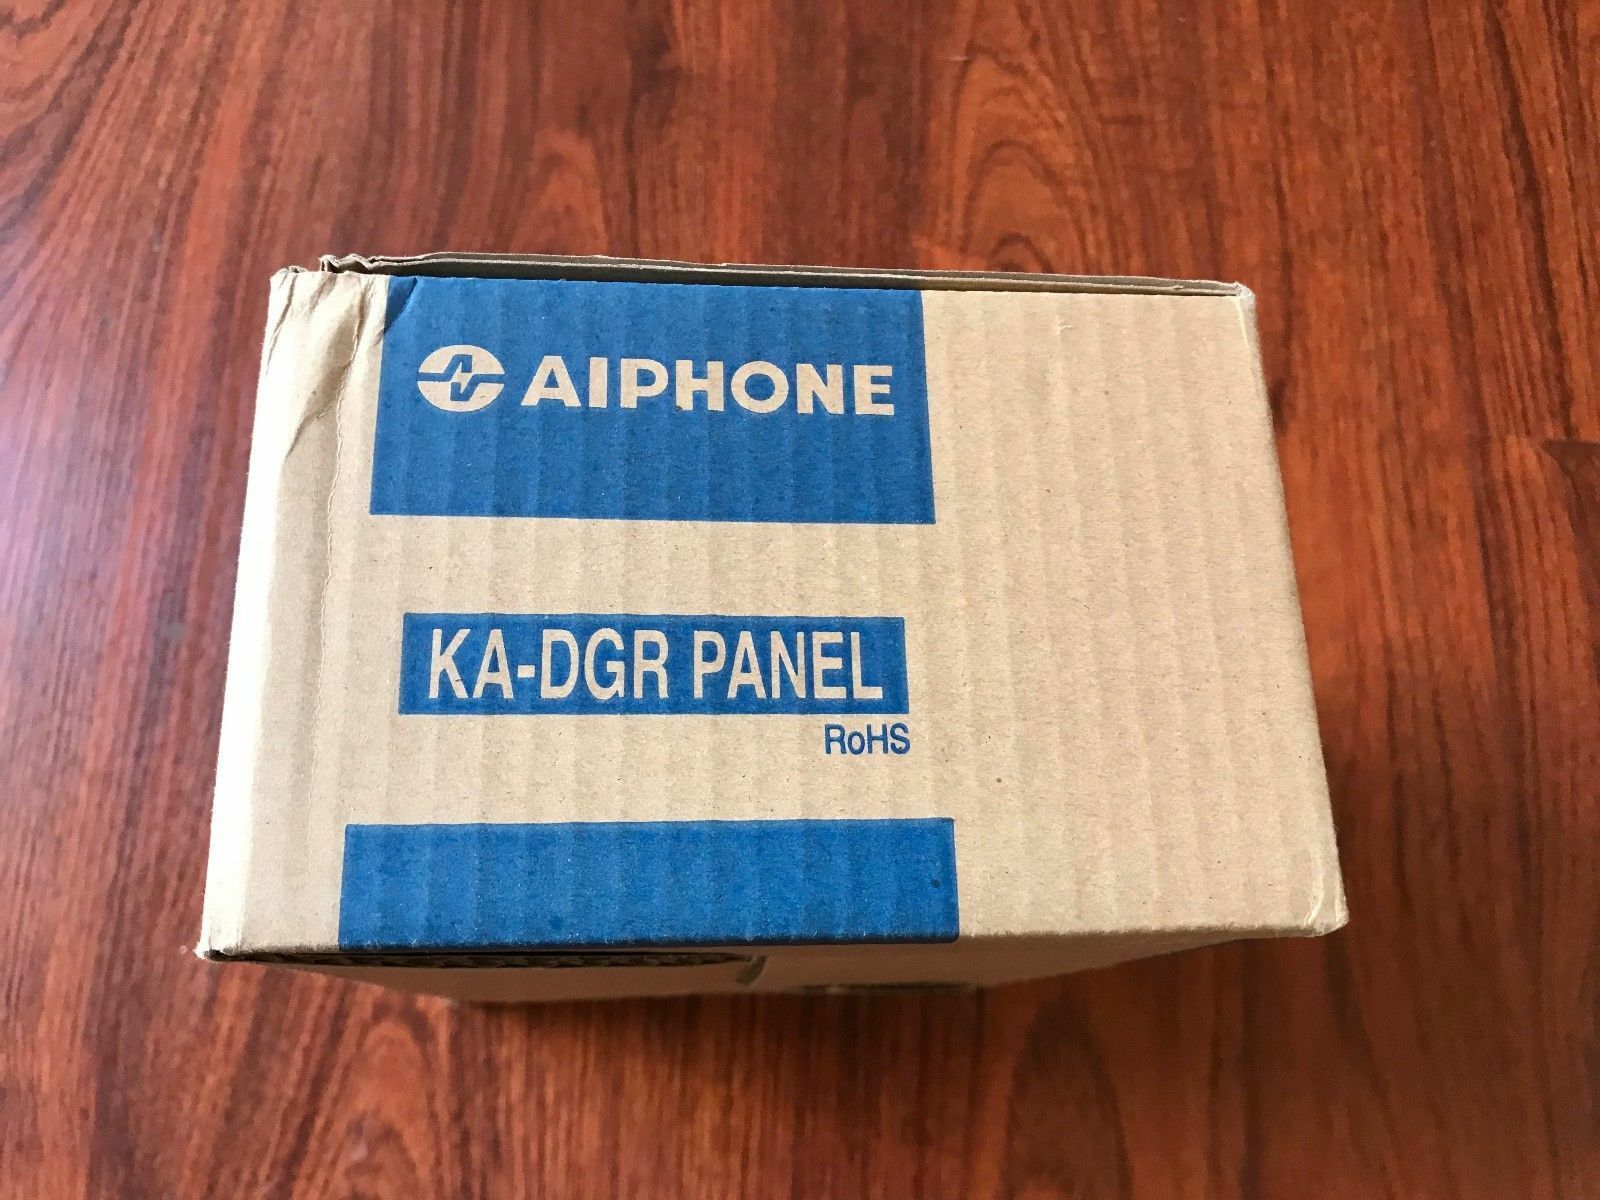 New Aiphone KA-DGR PANEL  Vandal and Weather-Resistant  Stainless Steel Housing